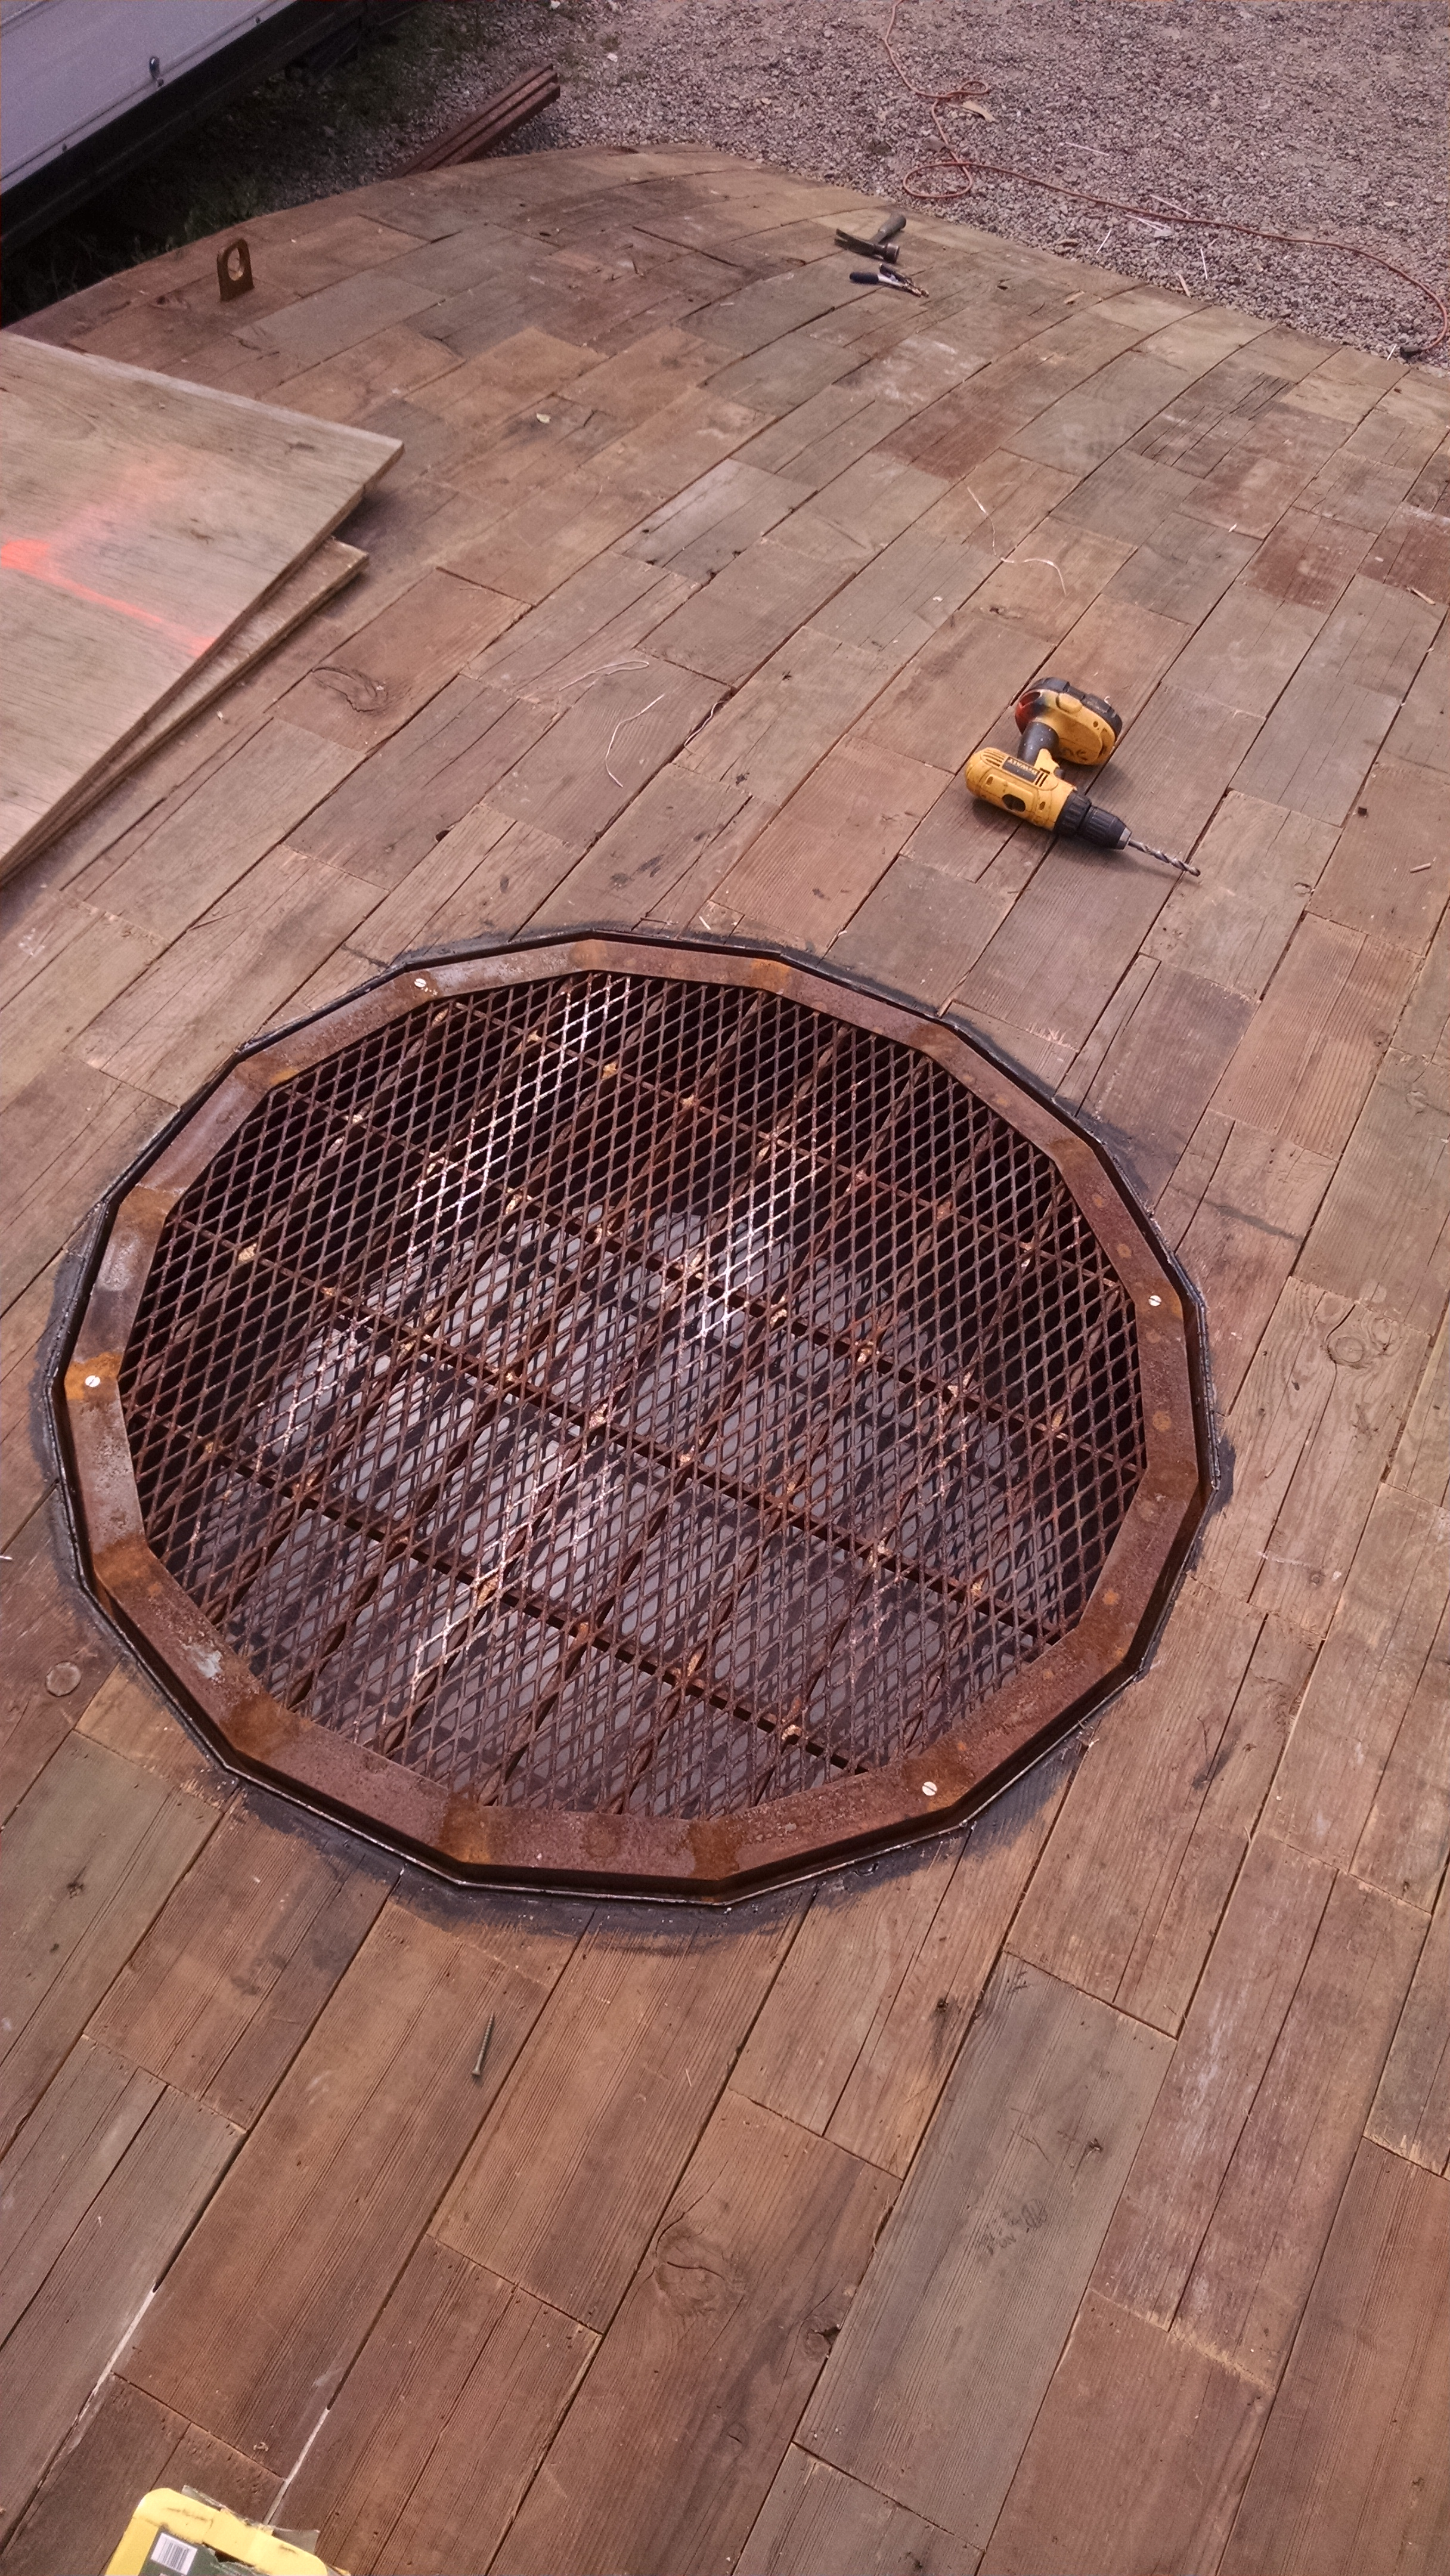 Manhole in there